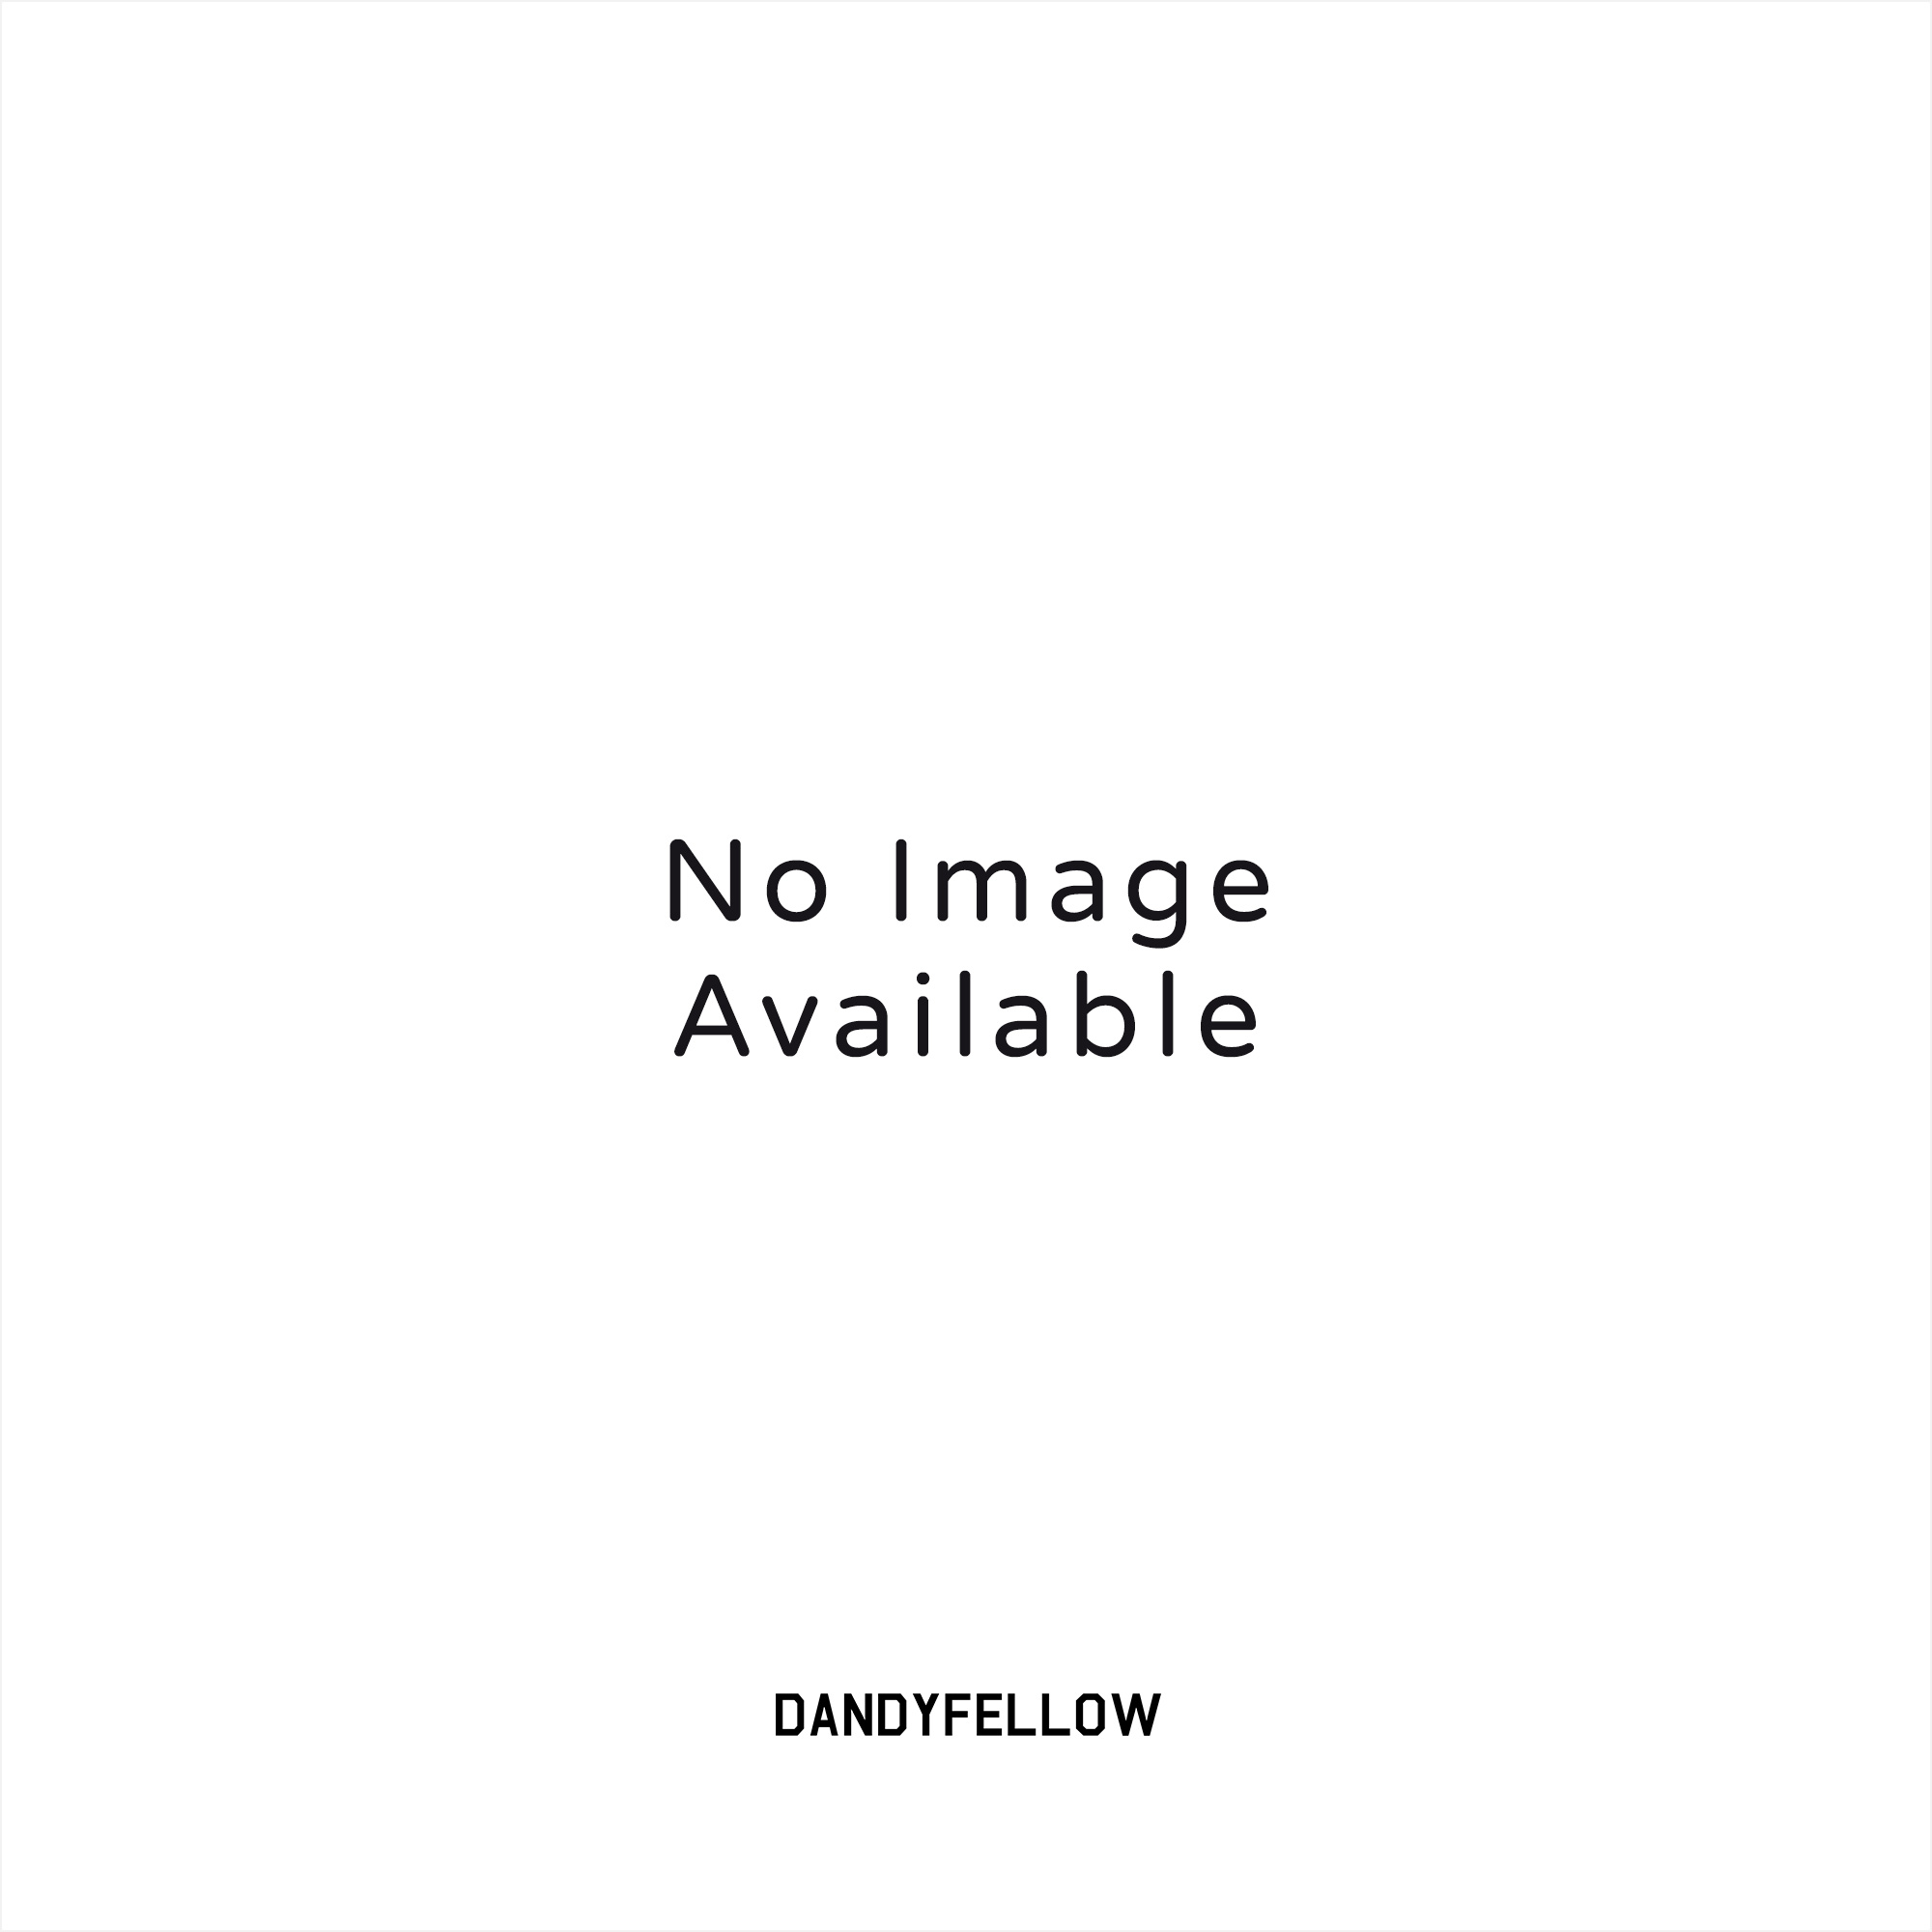 Los Angeles Angels (PCL) 1954 Vintage Ballcap